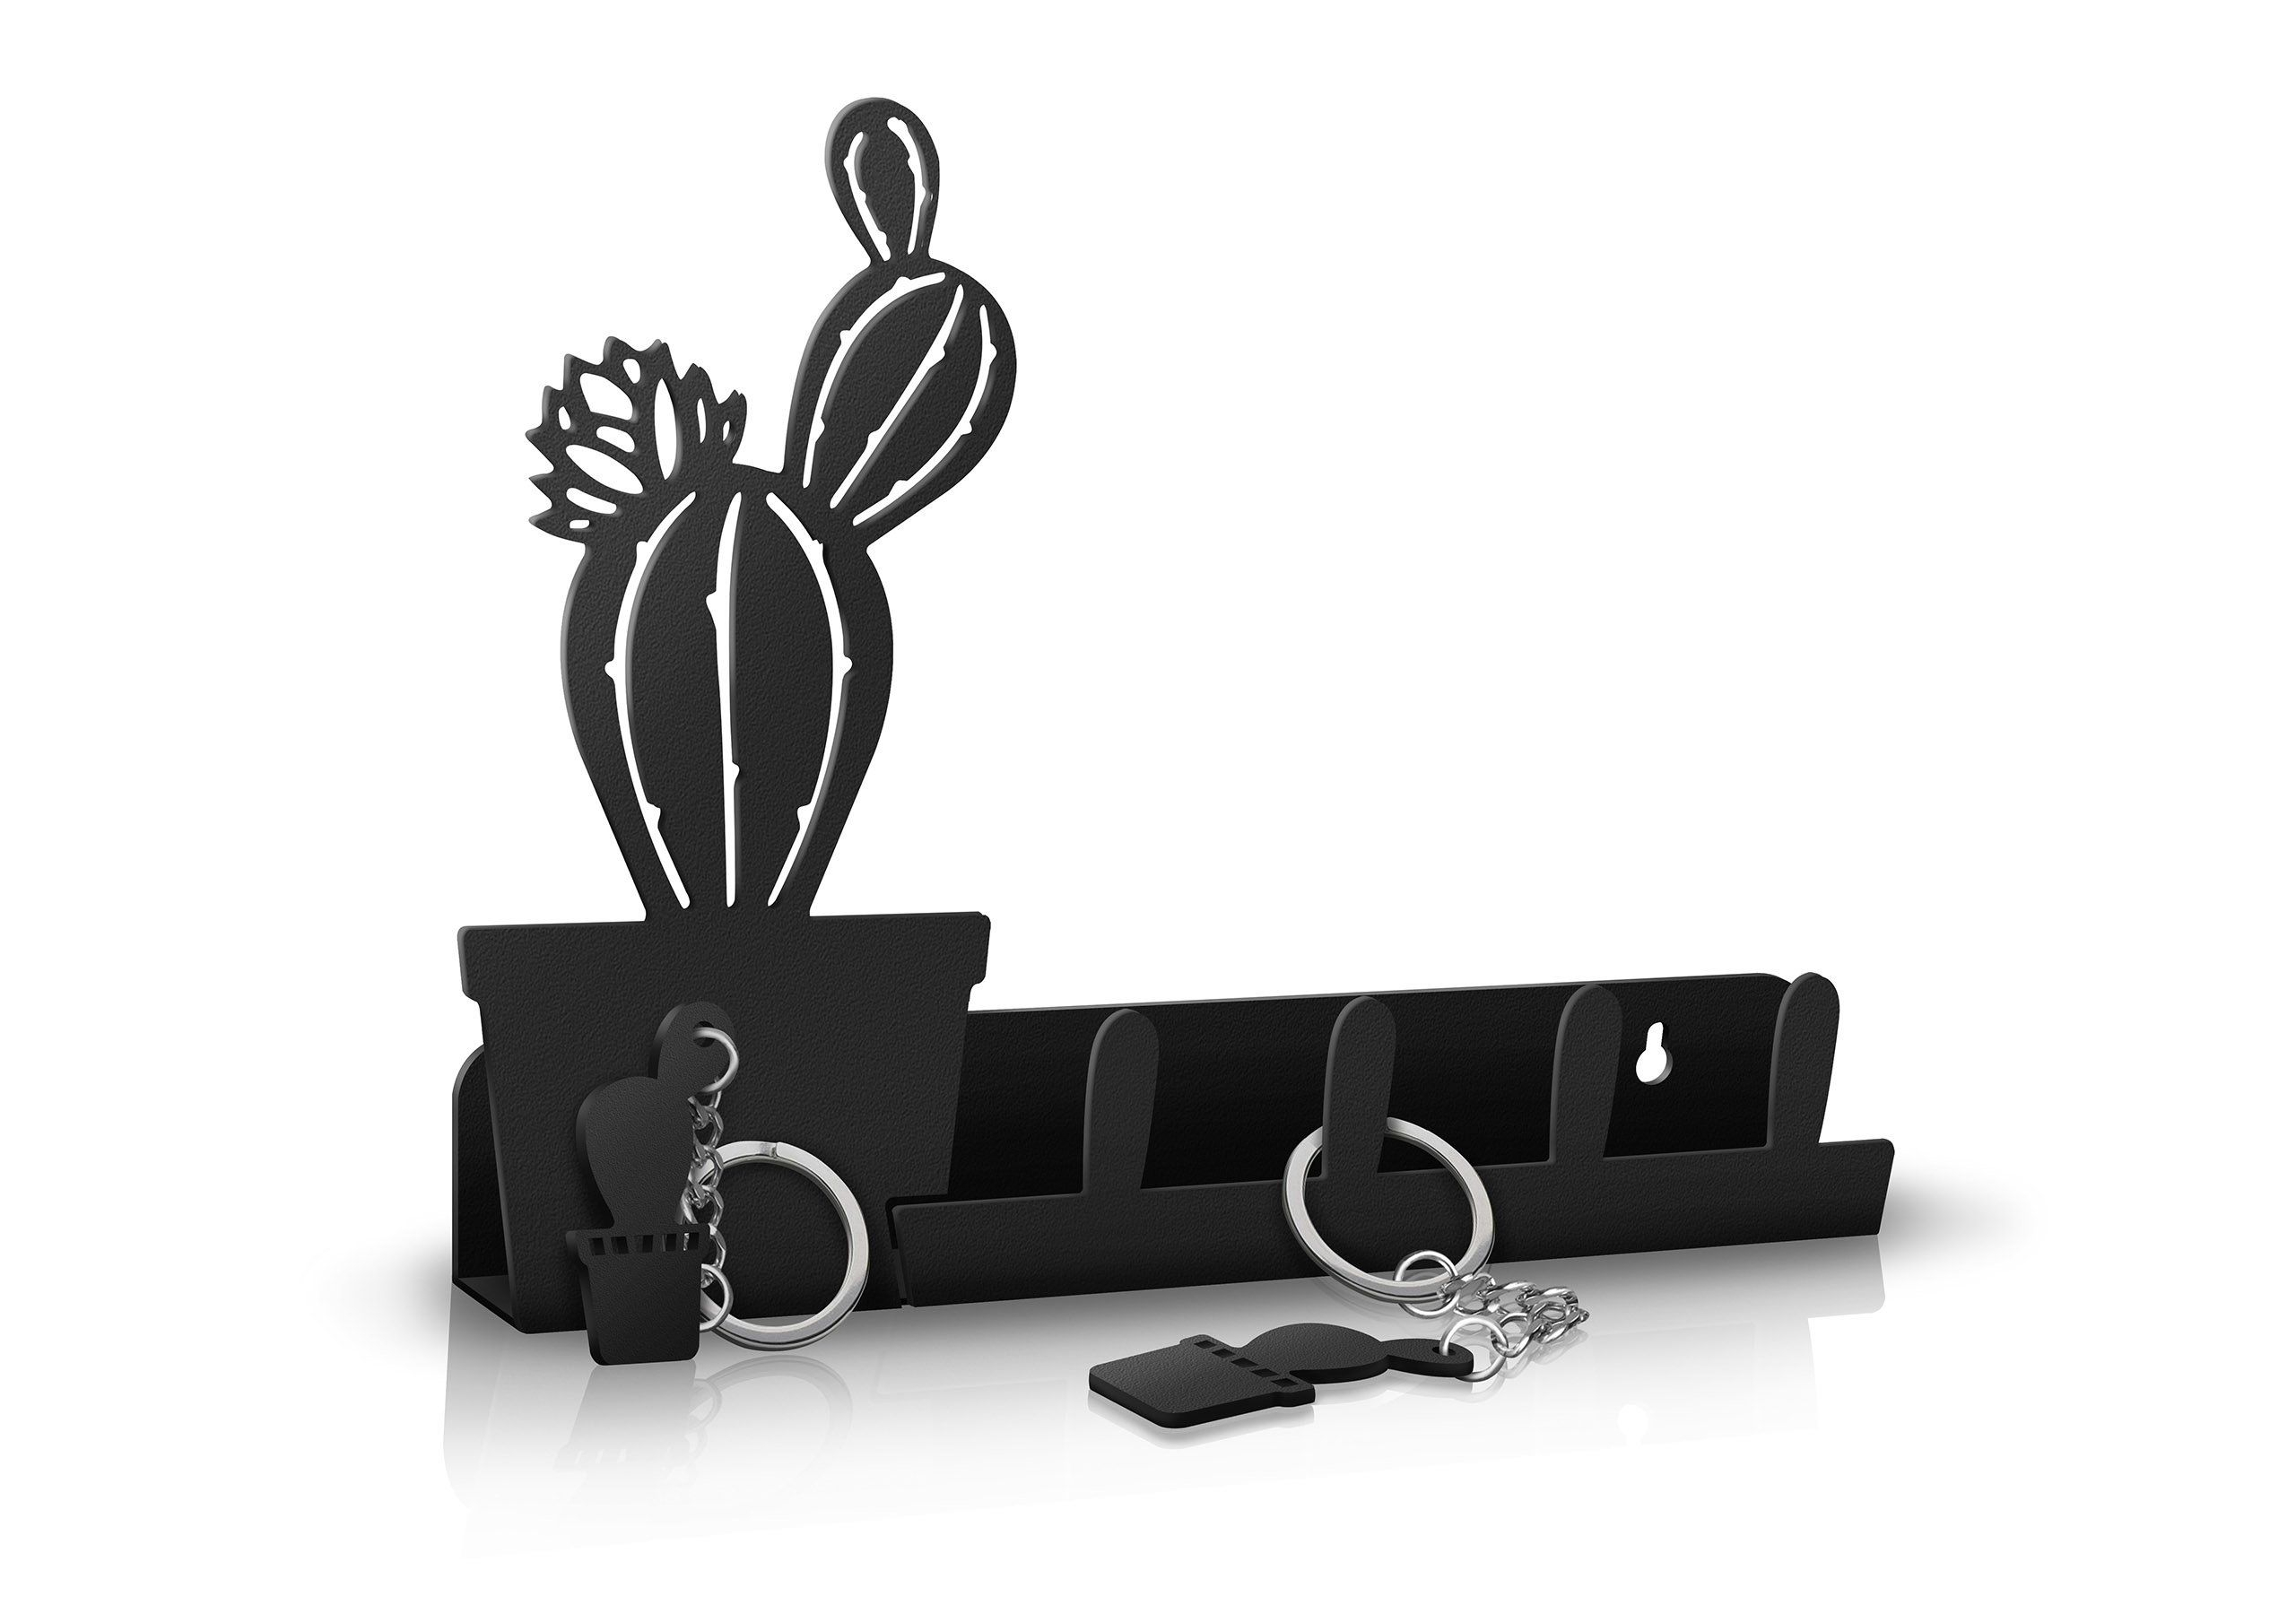 Kukupua Cactus Wall Key Holder Mail Organizer Decorative Key With Black Metal Key Wall Decor (View 19 of 30)